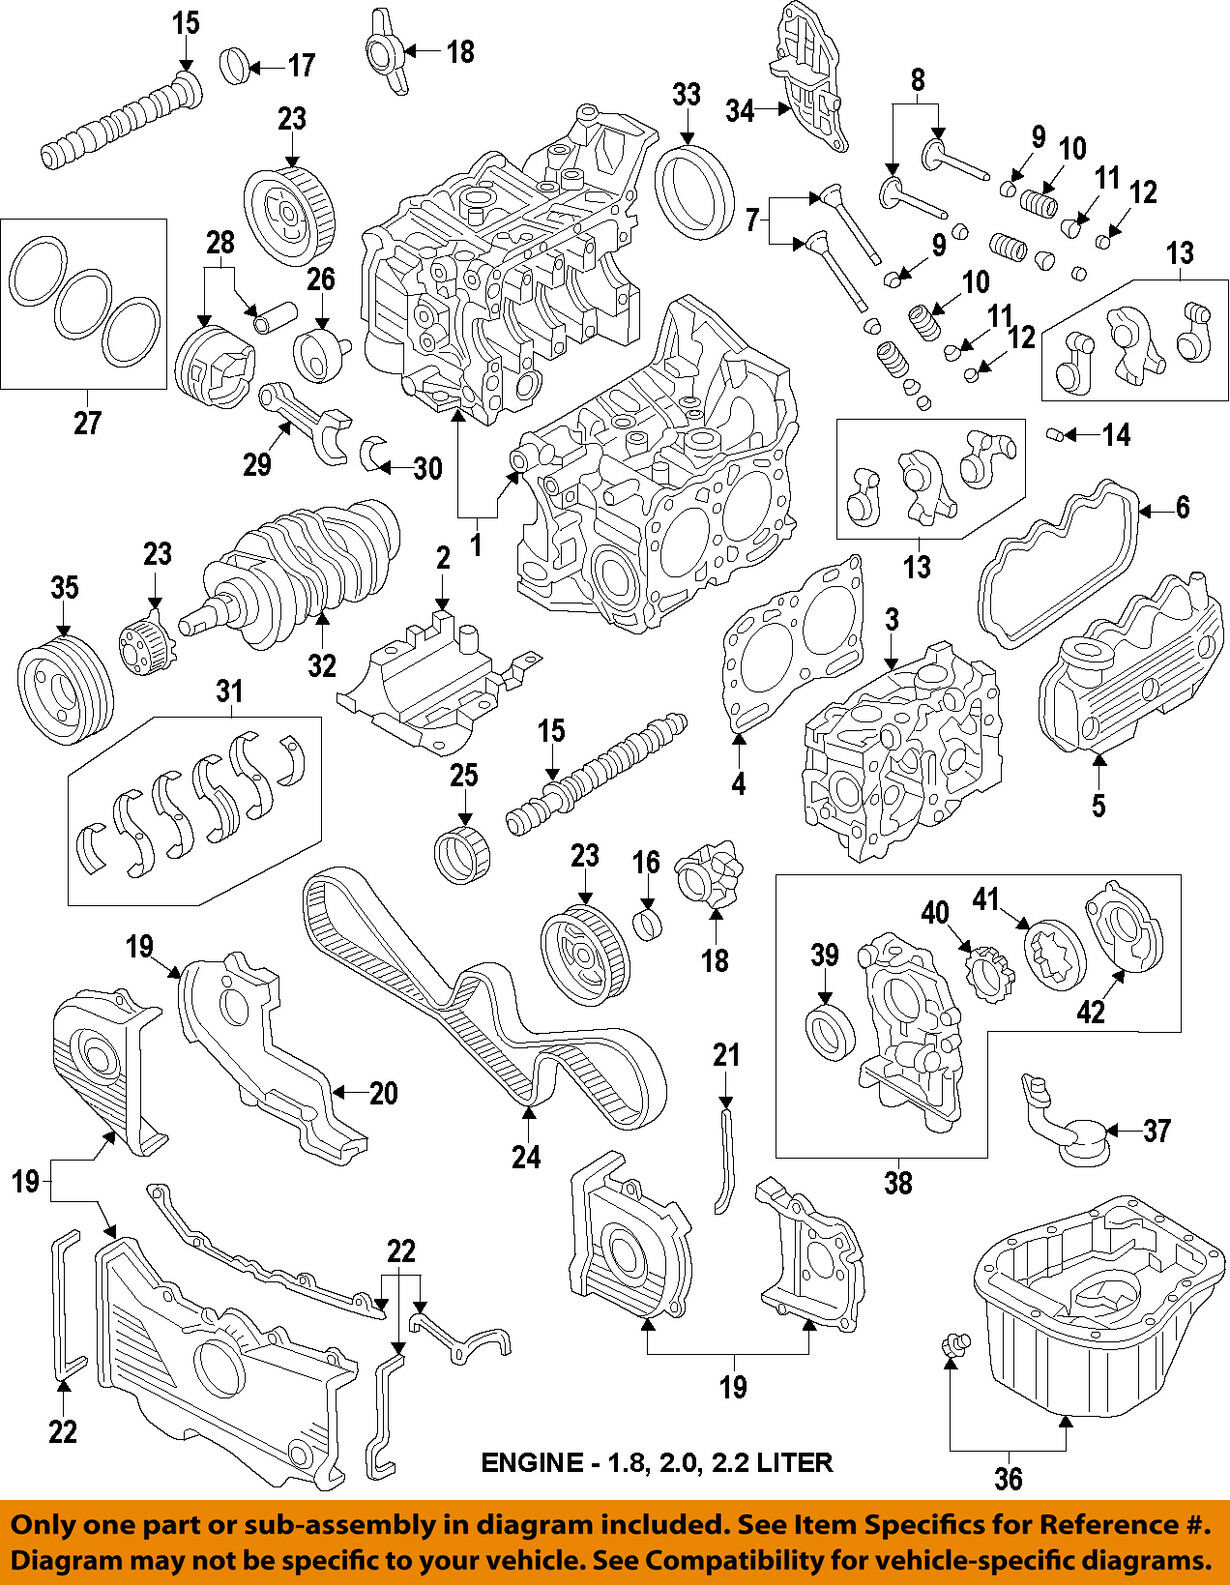 Subaru Oem 96 99 Legacy Engine Oil Pick Up Tube 15050aa050 3668 1995 Diagram 1 Of 1only 2 Available